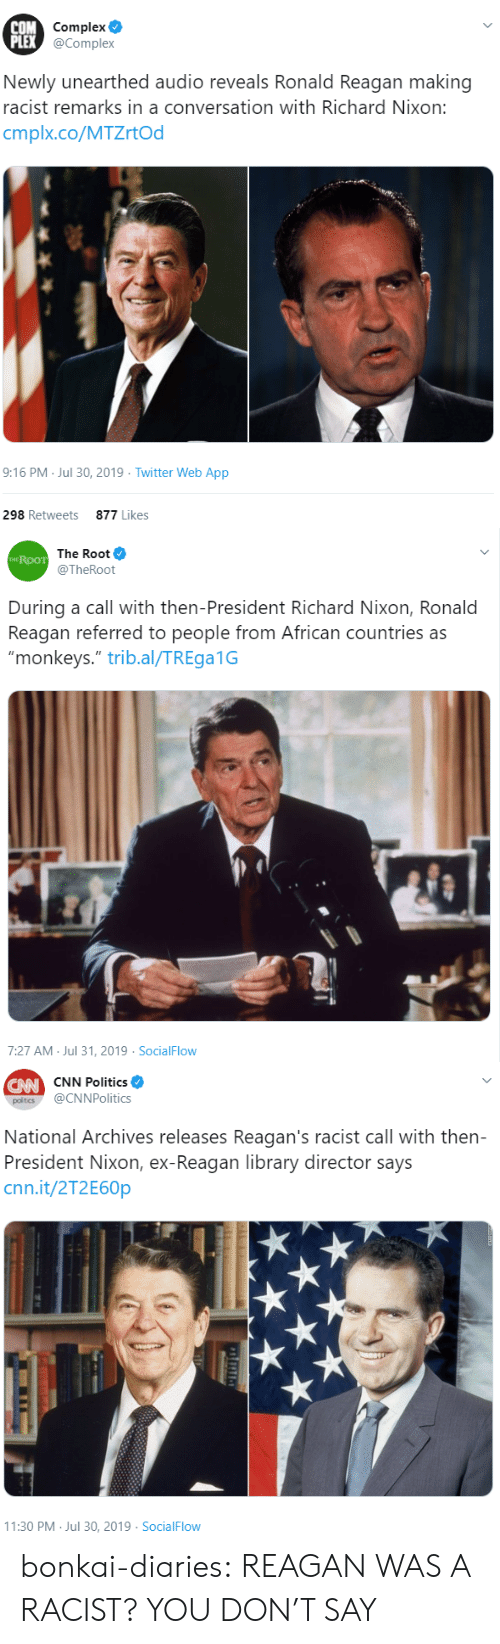 """cnn.com, Complex, and Politics: COM Complex  PLEX @Complex  Newly unearthed audio reveals Ronald Reagan making  racist remarks in a conversation with Richard Nixon:  cmplx.co/MTZrtOd  9:16 PM Jul 30, 2019 Twitter Web App  298 Retweets  877 Likes   The Root  THE ROOT  @TheRoot  During a call with then-President Richard Nixon, Ronald  Reagan referred to people from African countries as  """"monkeys."""" trib.al/TREga1G  7:27 AM Jul 31, 2019 SocialFlow   CW CNN Politics  @CNNPolitics  poltics  National Archives releases Reagan's racist call with then-  President Nixon, ex-Reagan library director says  cnn.it/2T2E60P  11:30 PM Jul 30, 2019 SocialFlow bonkai-diaries:  REAGAN WAS A RACIST? YOU DON'T SAY"""